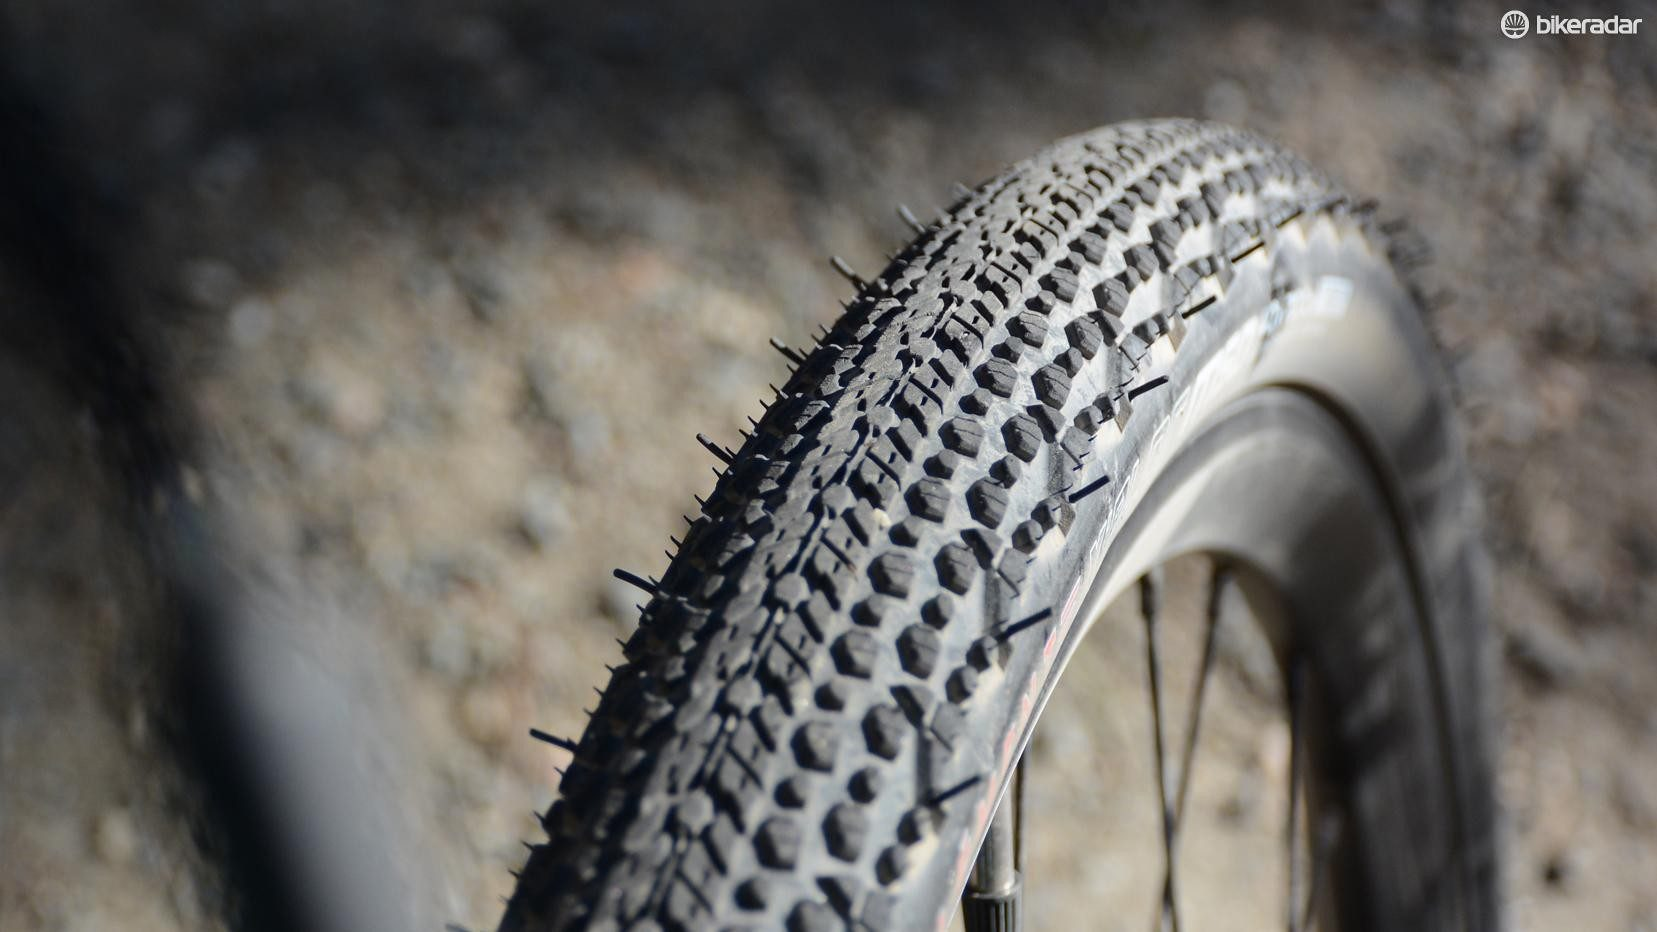 Donnelly X/'Plor MSO Tire Tubeless